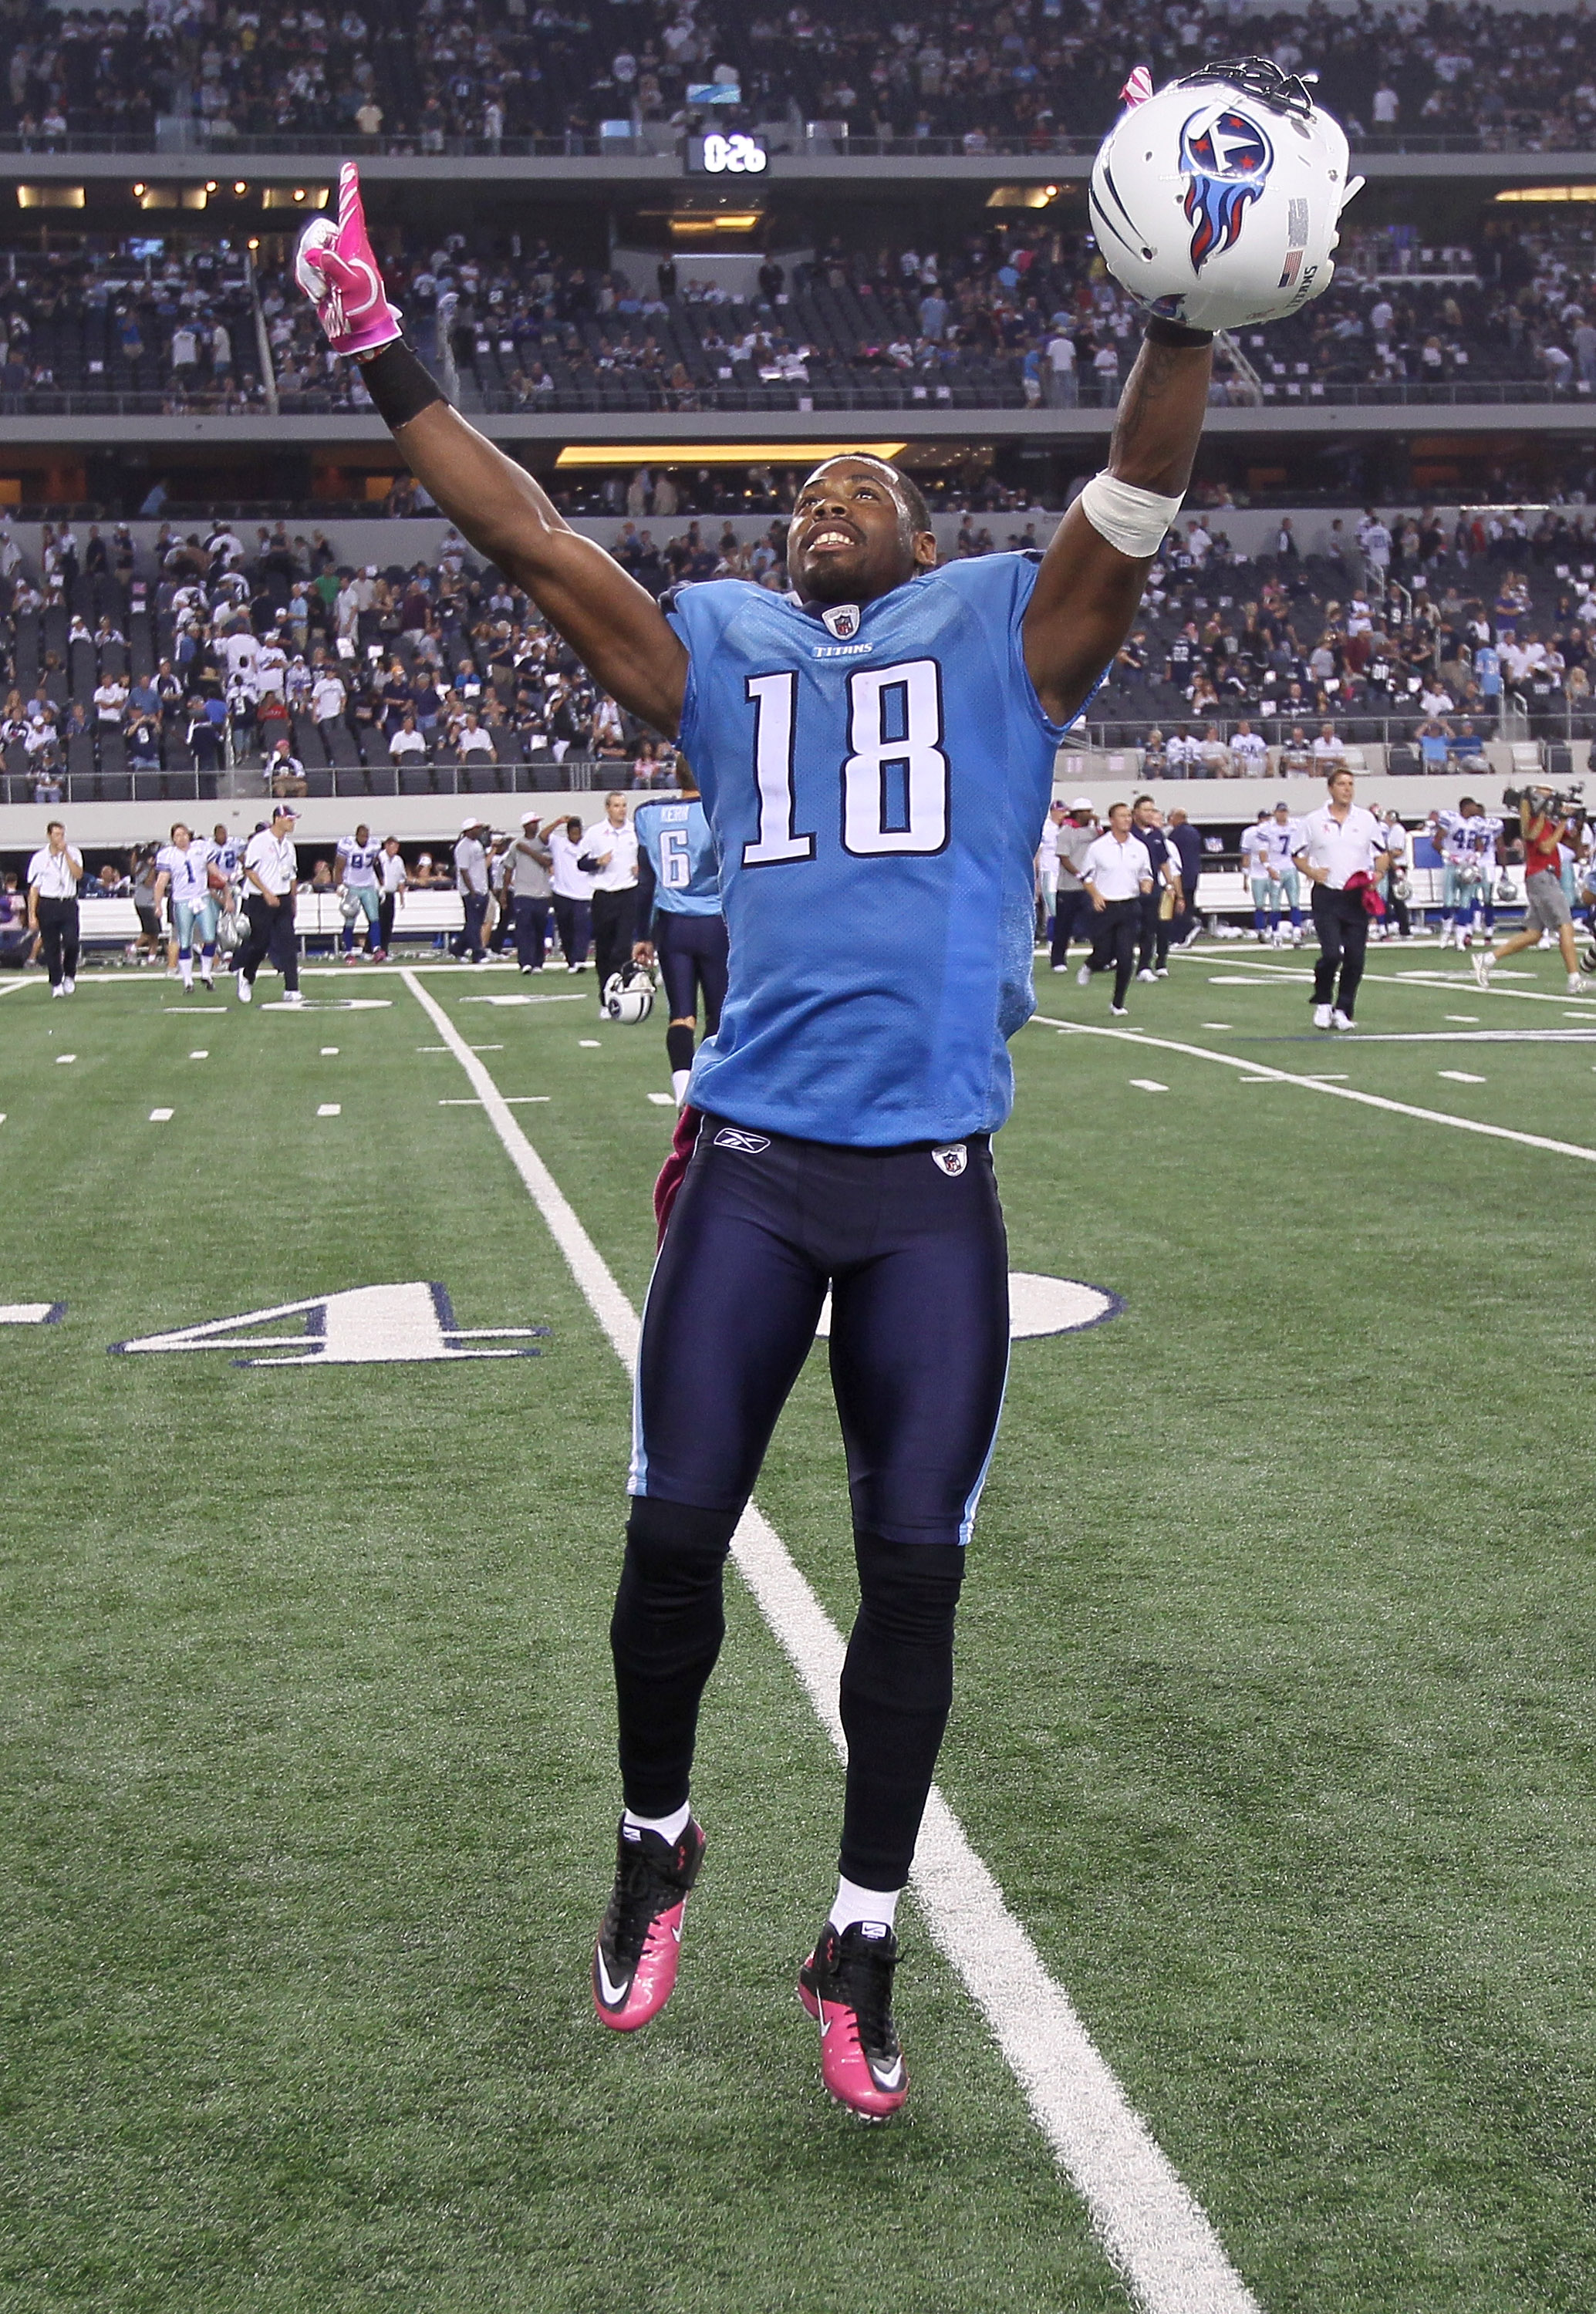 ARLINGTON, TX - OCTOBER 10:  Wide receiver Kenny Britt #18 of the Tennessee Titans celebrates after the game against the Dallas Cowboys at Cowboys Stadium on October 10, 2010 in Arlington, Texas. The Titans won 34-27.  (Photo by Stephen Dunn/Getty Images)